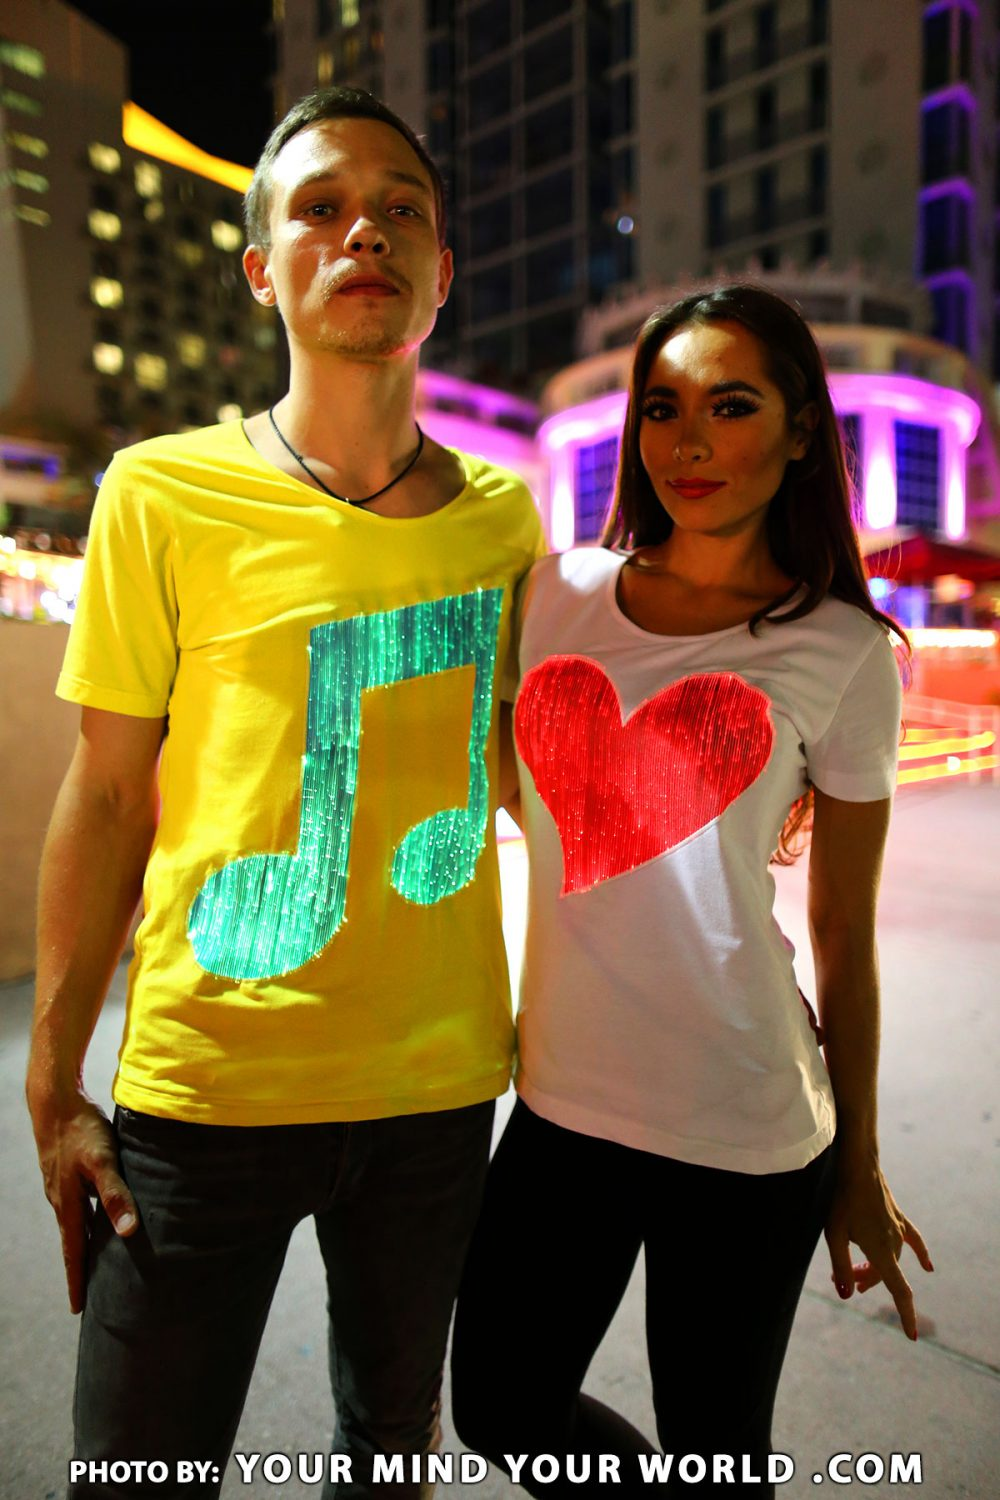 Led Rave clothing